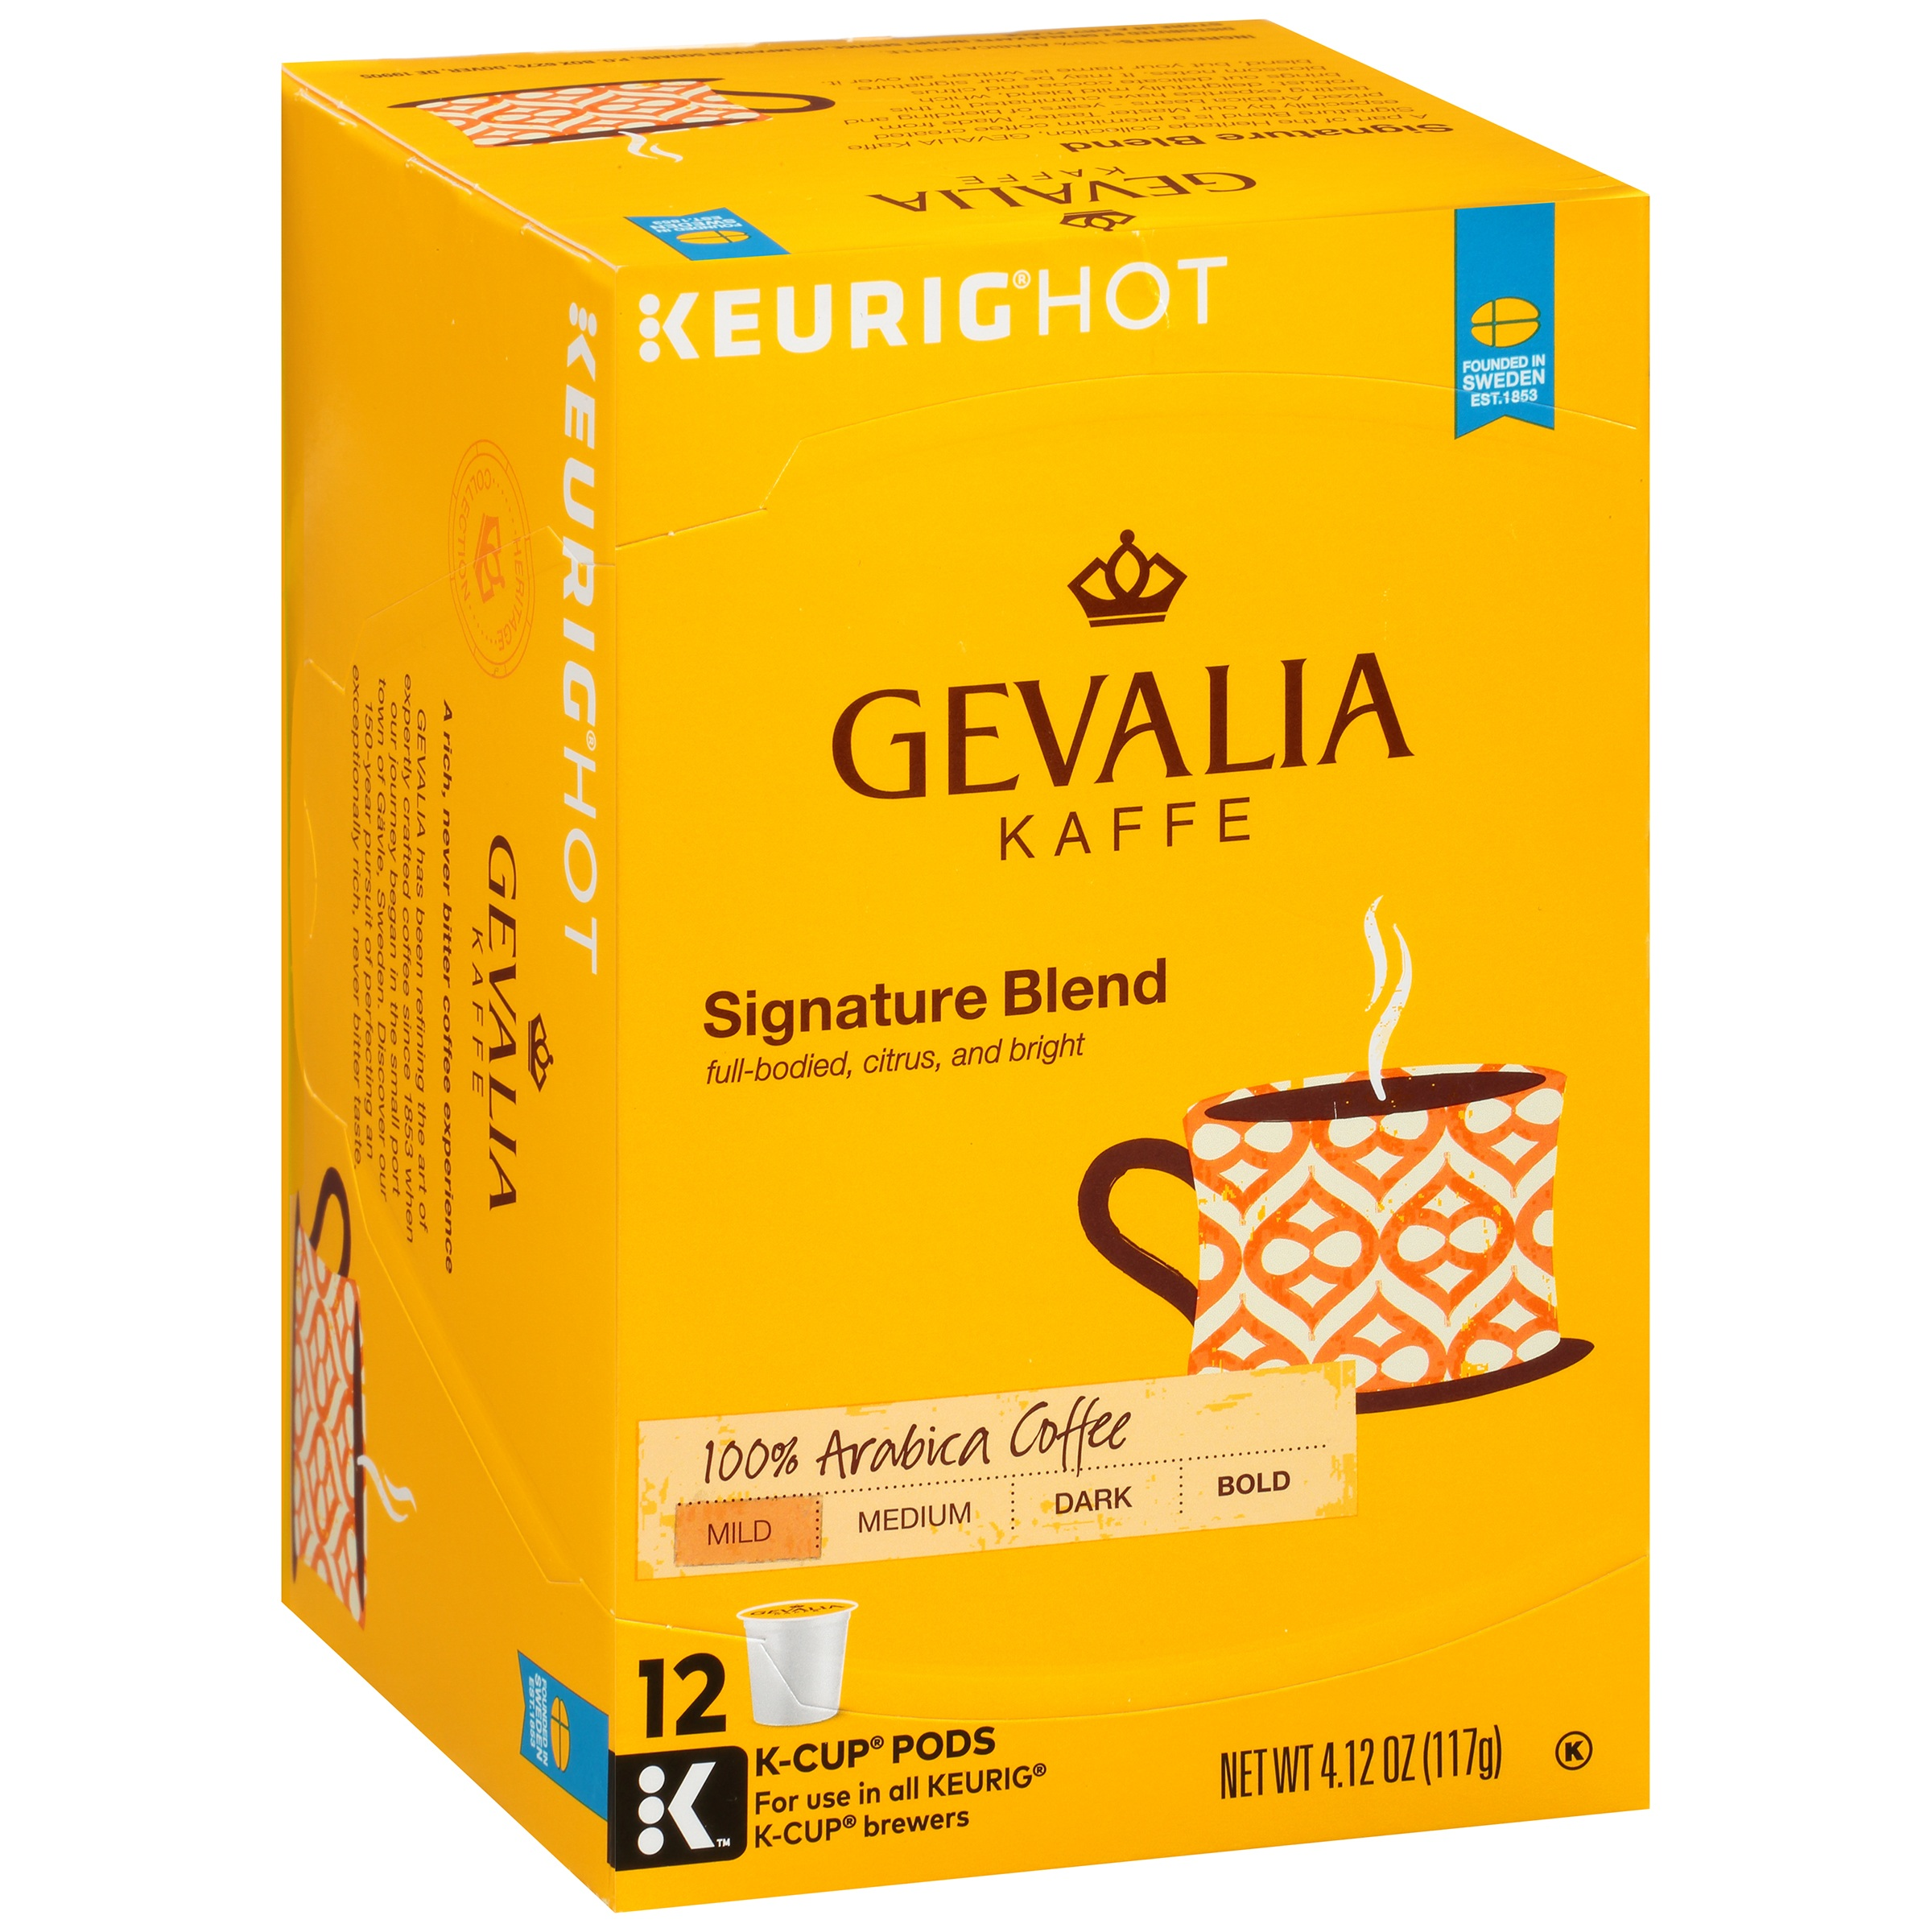 Gevalia Kaffe Signature Blend Mild Roast Coffee K-Cup Packs, 12 count, 4.12 OZ (117g)